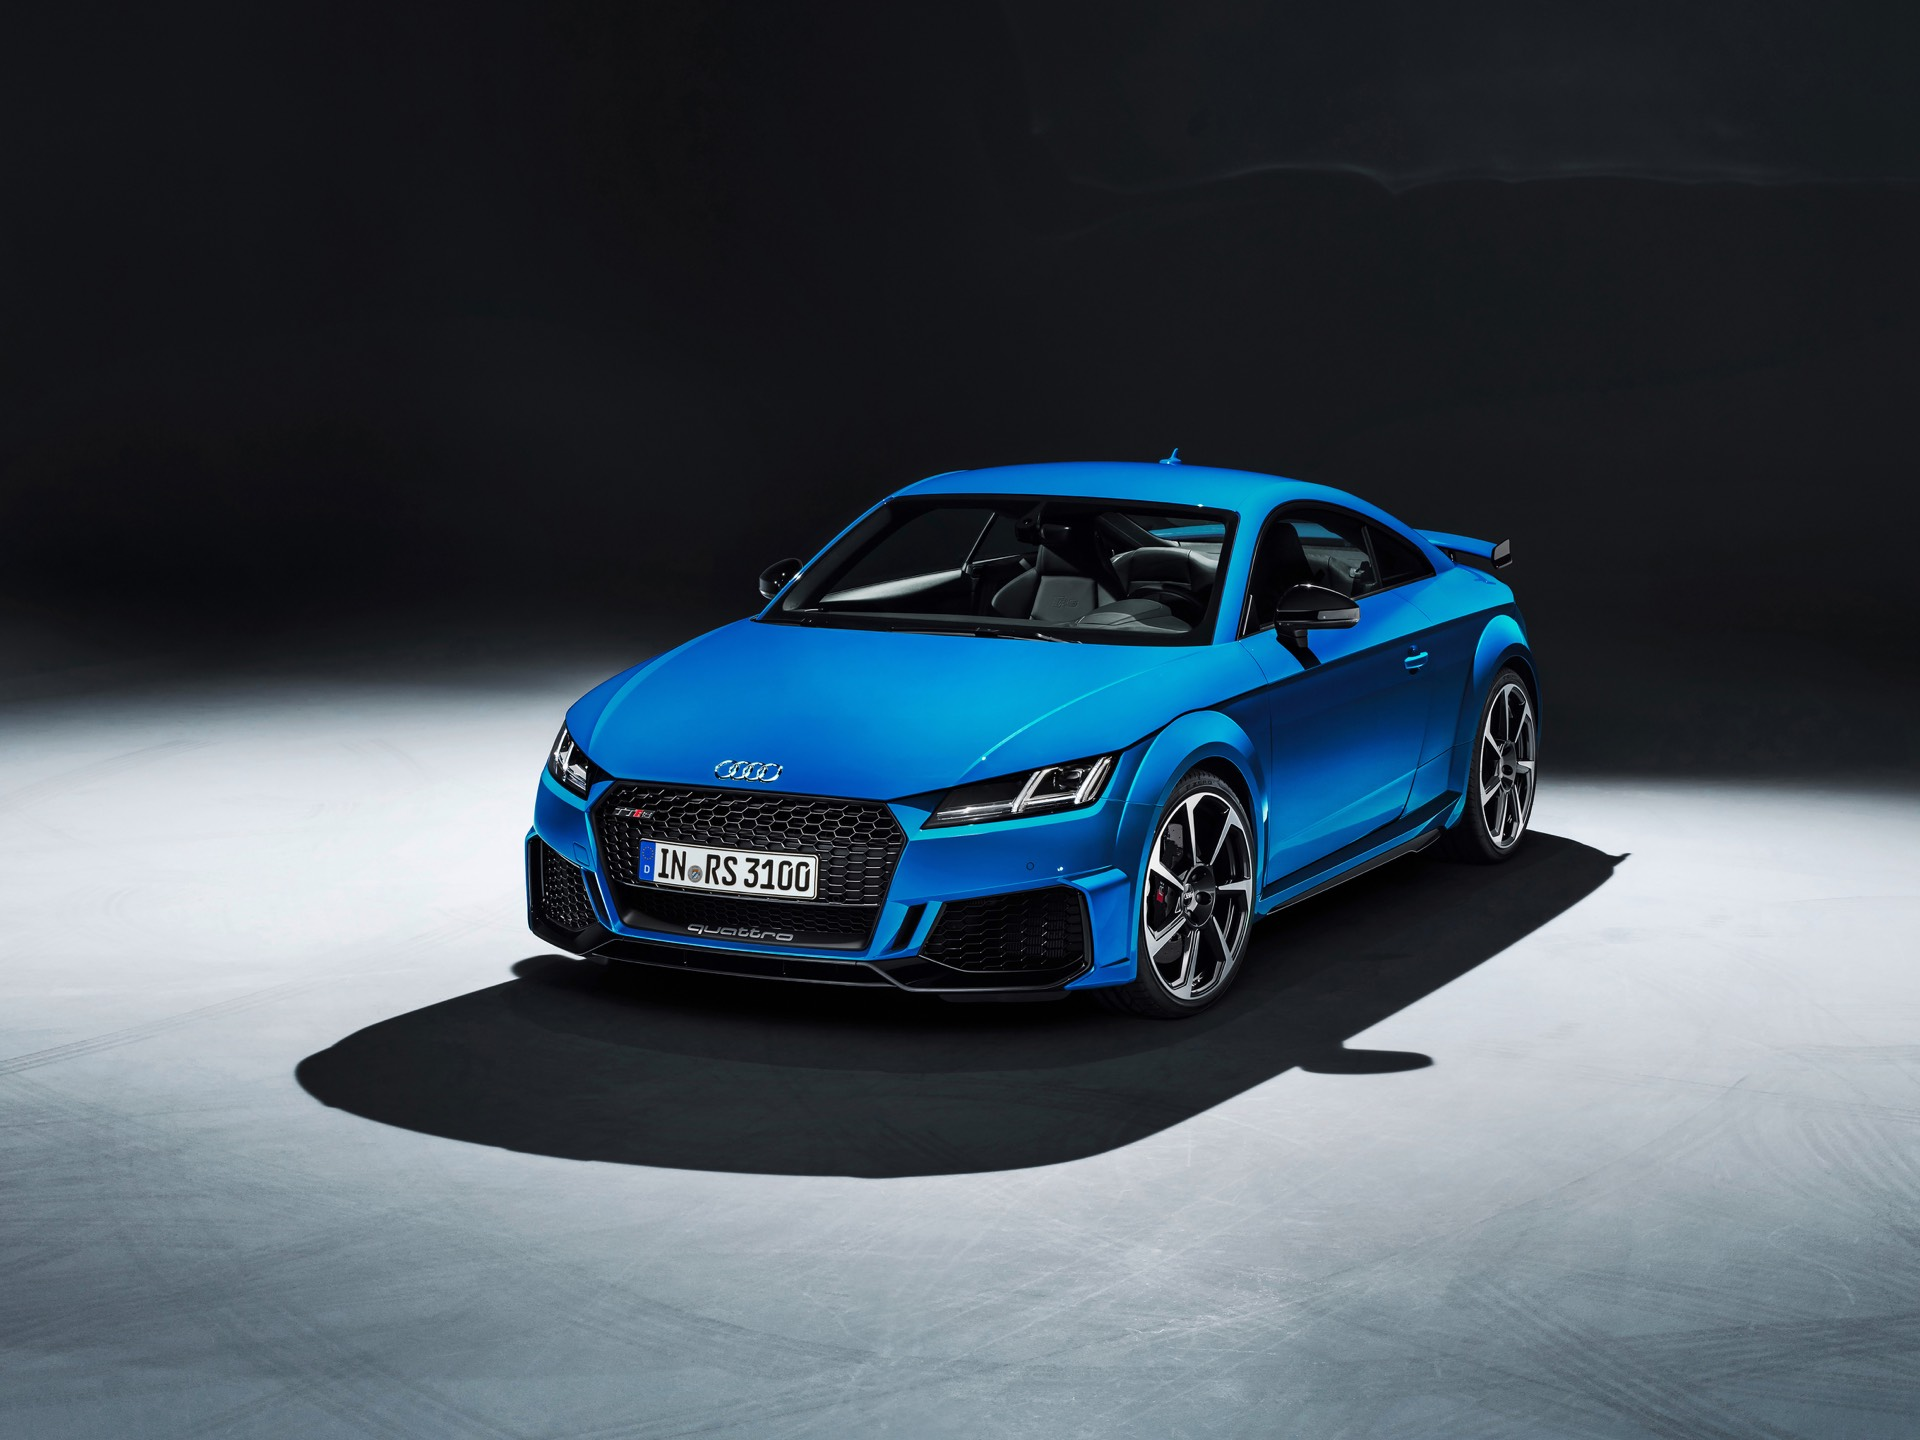 Audi TT RS Coupe and TT RS Roadster Get Facelift - GTspirit